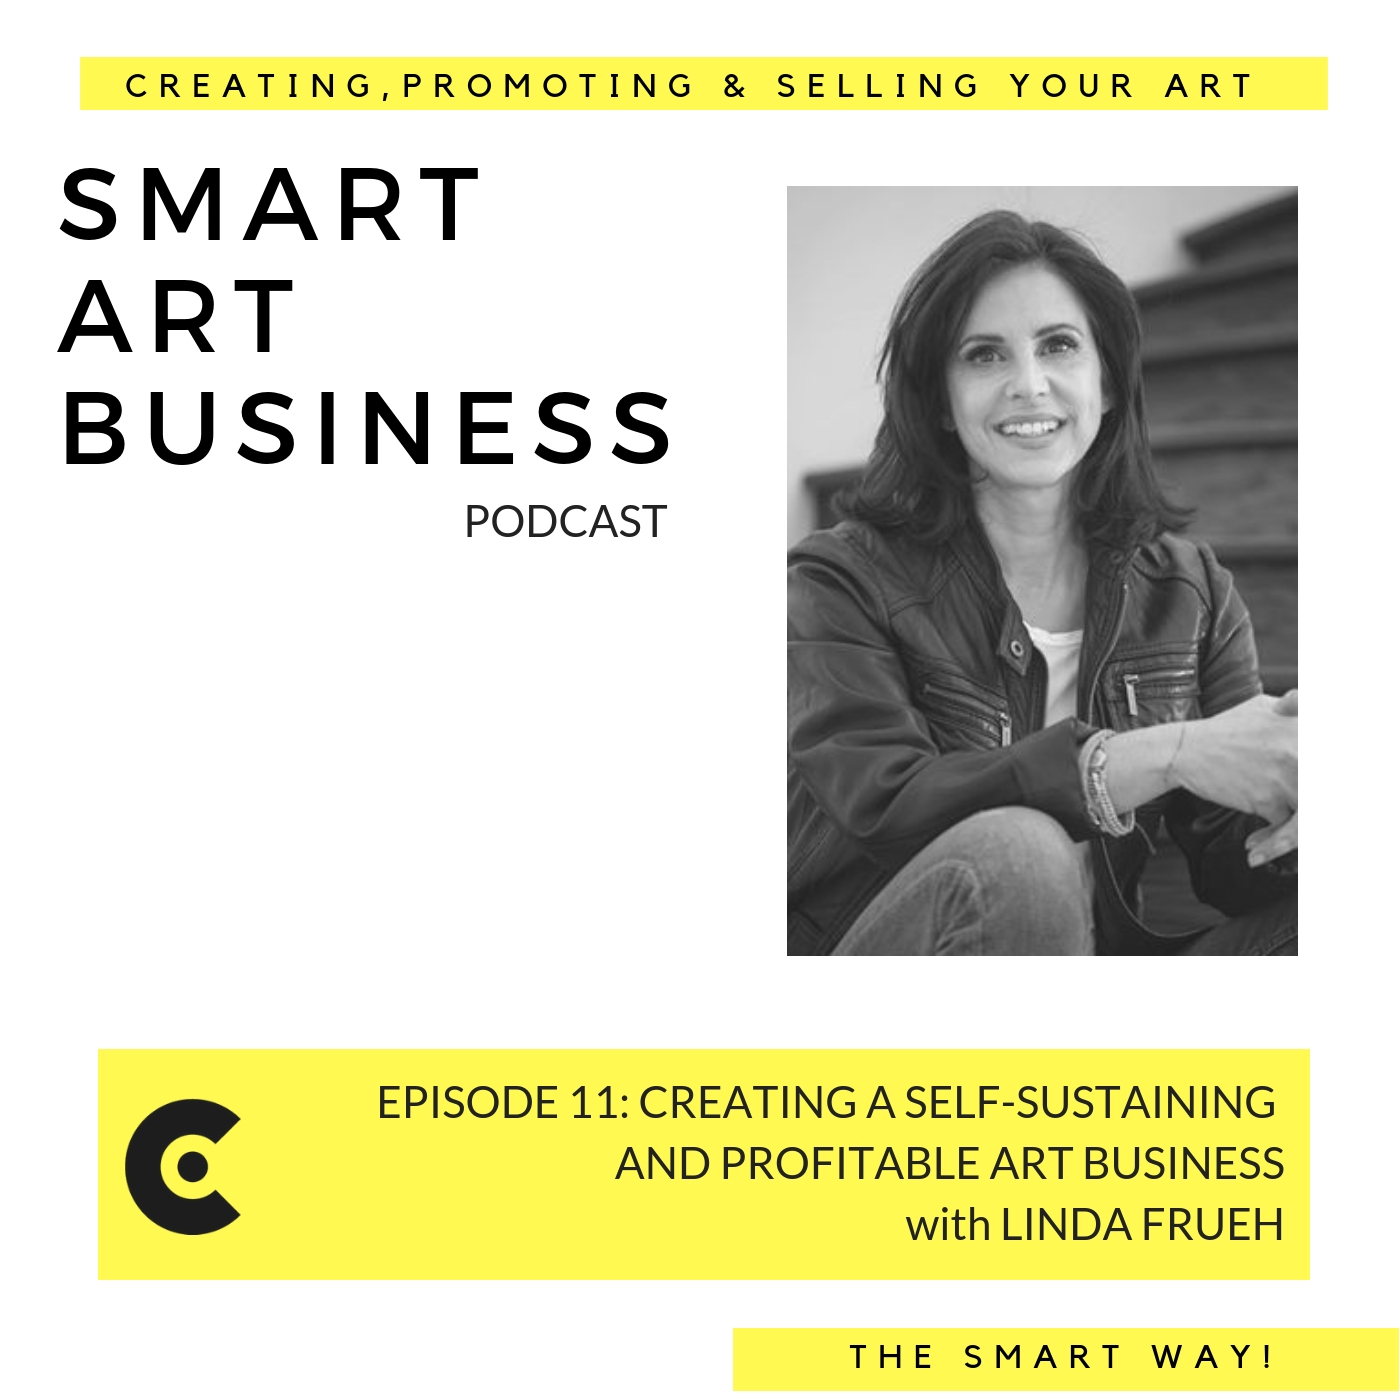 Creating a Self-Sustaining and Profitable Art Business with Linda Frueh